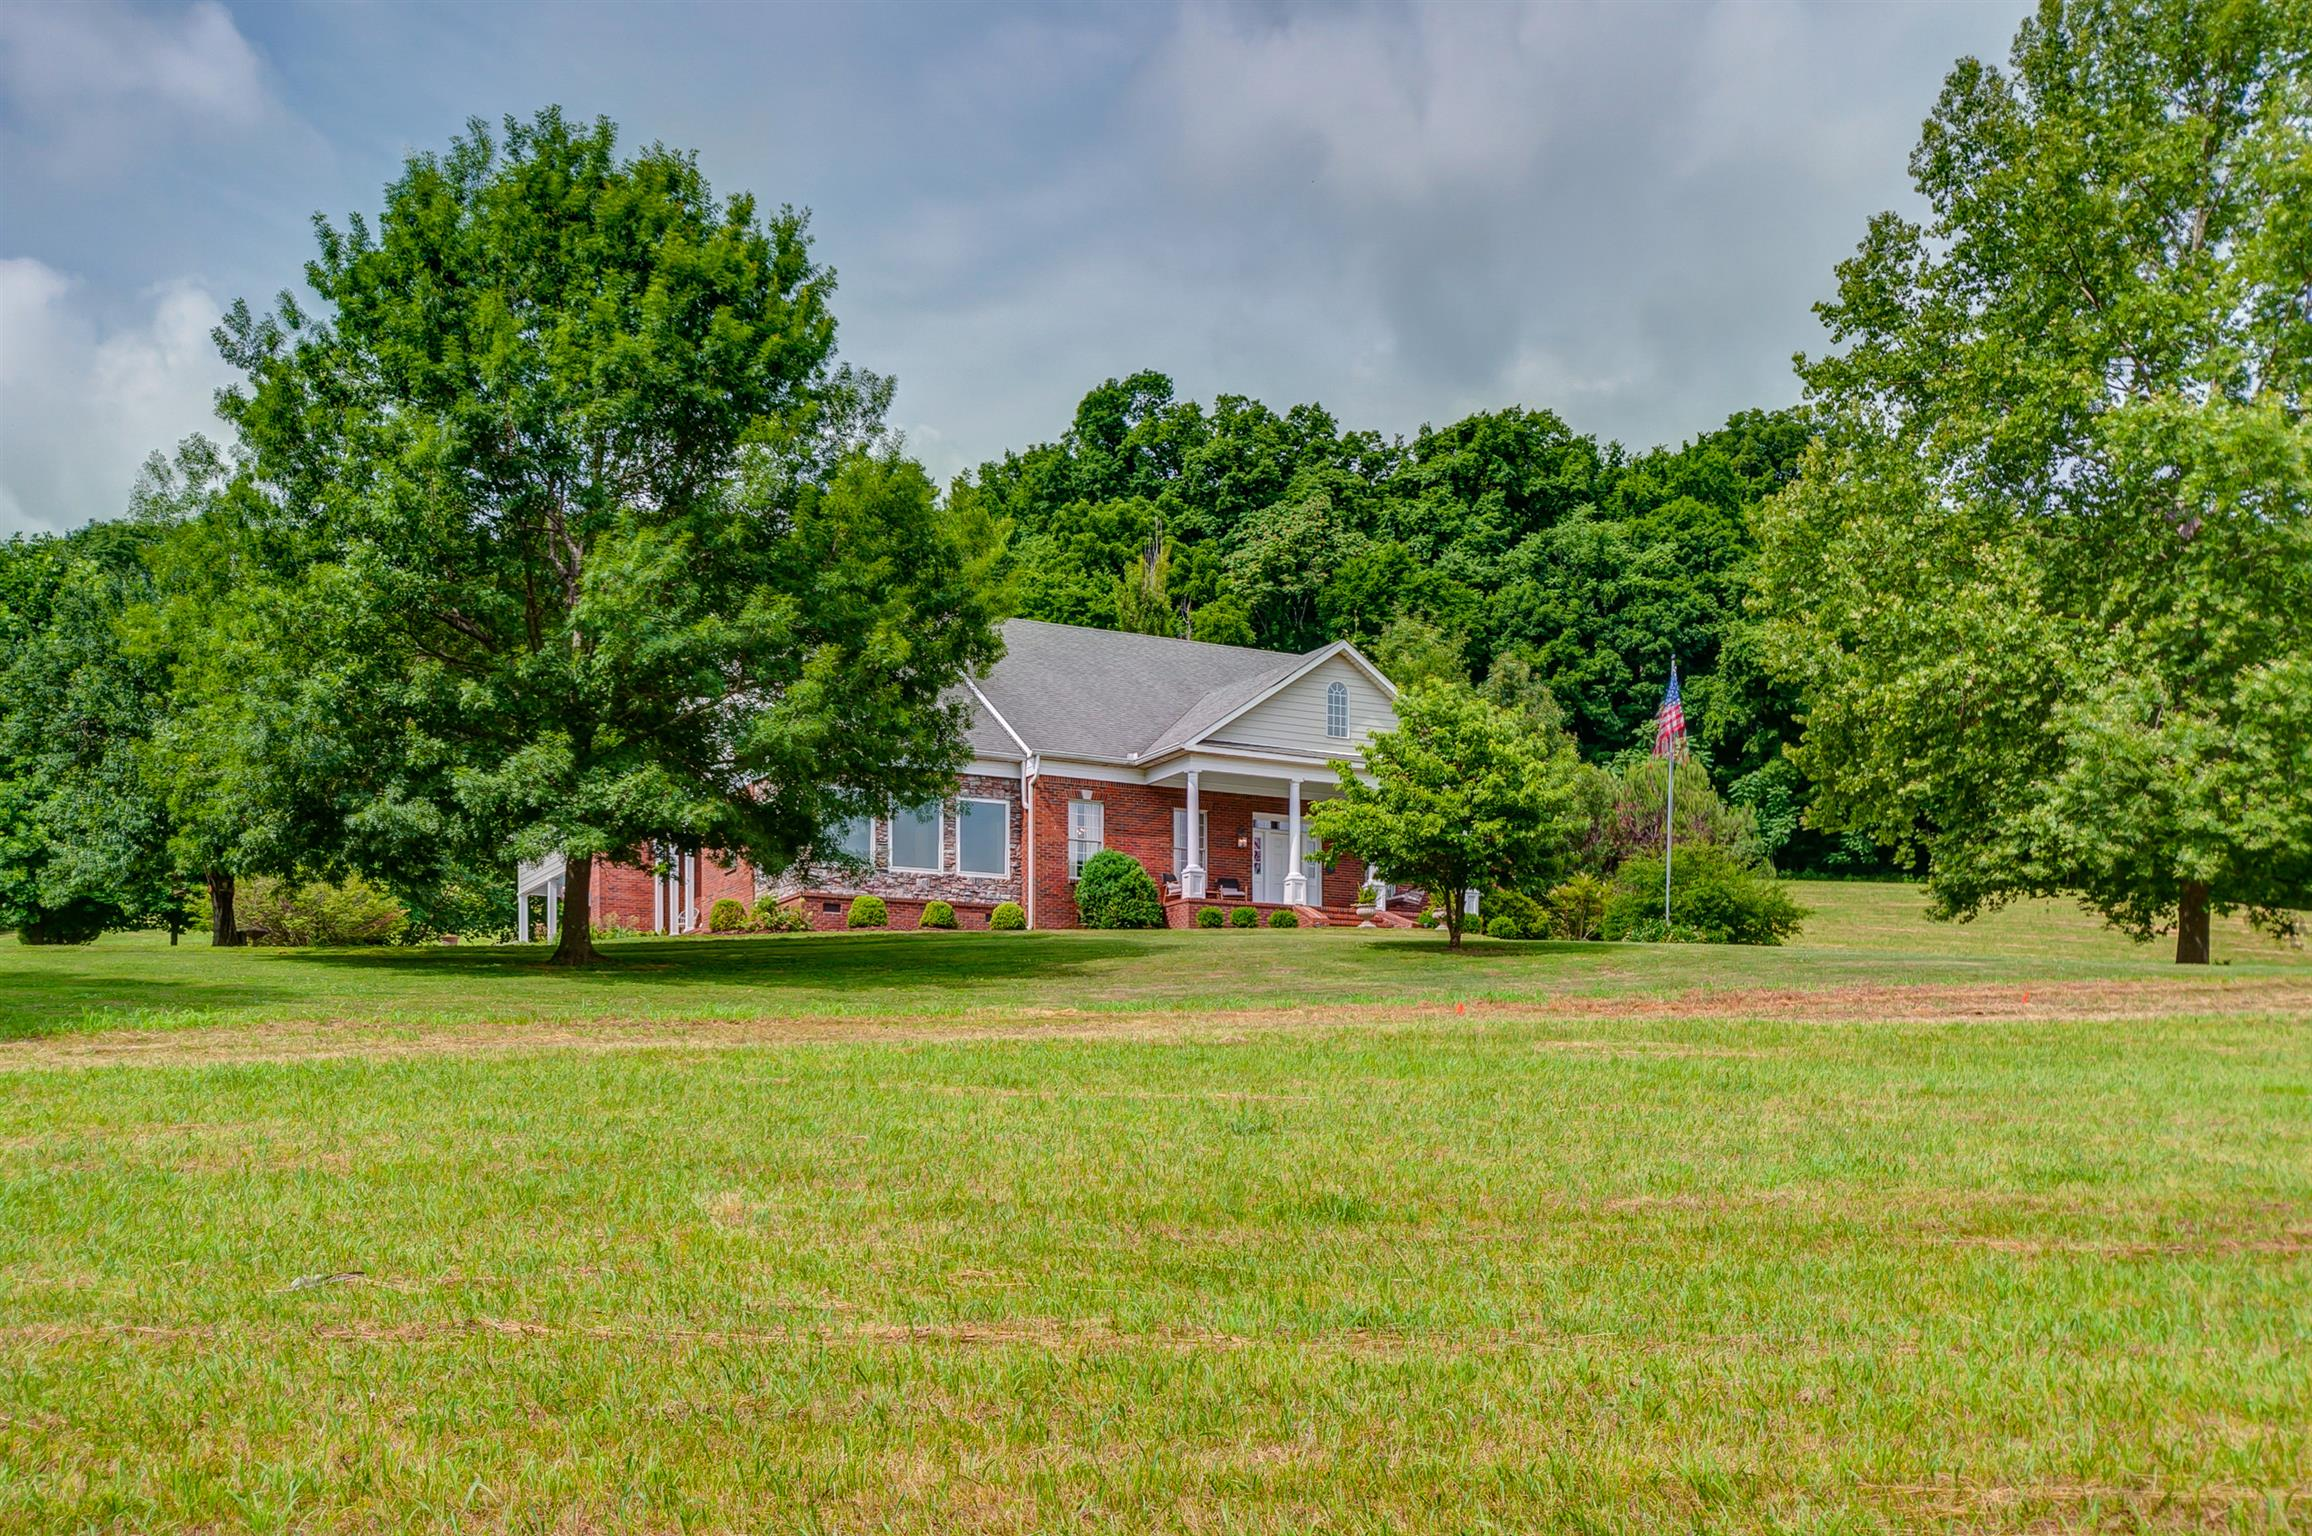 4218 Covey Hollow Rd, Culleoka, TN 38451 - Culleoka, TN real estate listing